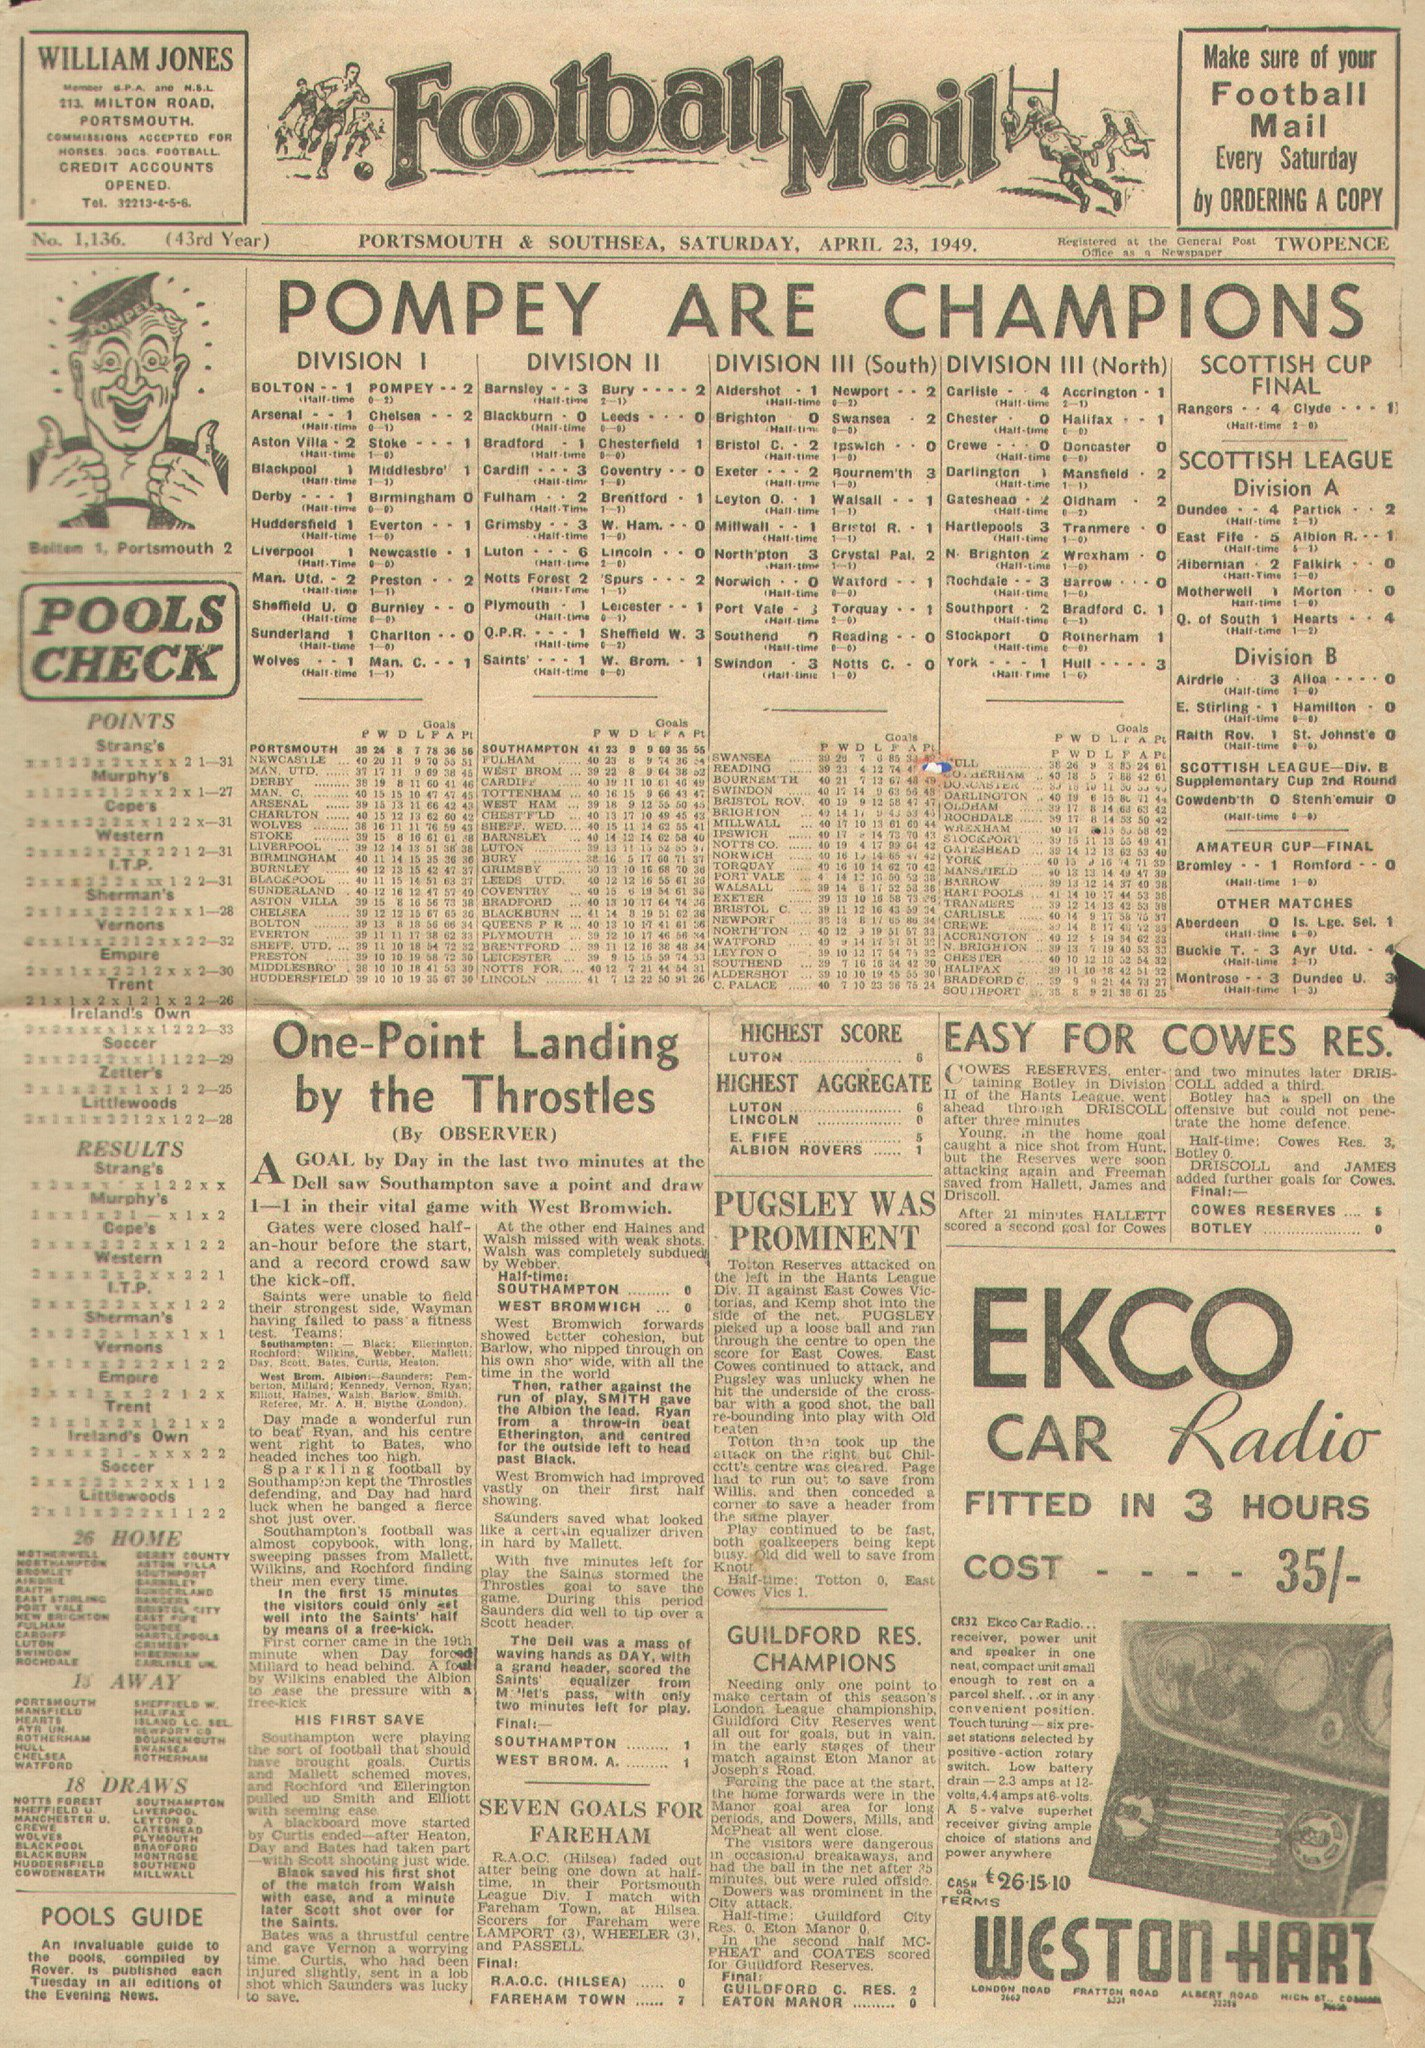 Happy St George's Day everyone. It was #OTD in 1949 that #Pompey first became CHAMPIONS OF ENGLAND with a 2-1 win against Bolton Wanderers at Burnden Park. #PompeyHistory [Thread] https://t.co/mtDUKsMz4N